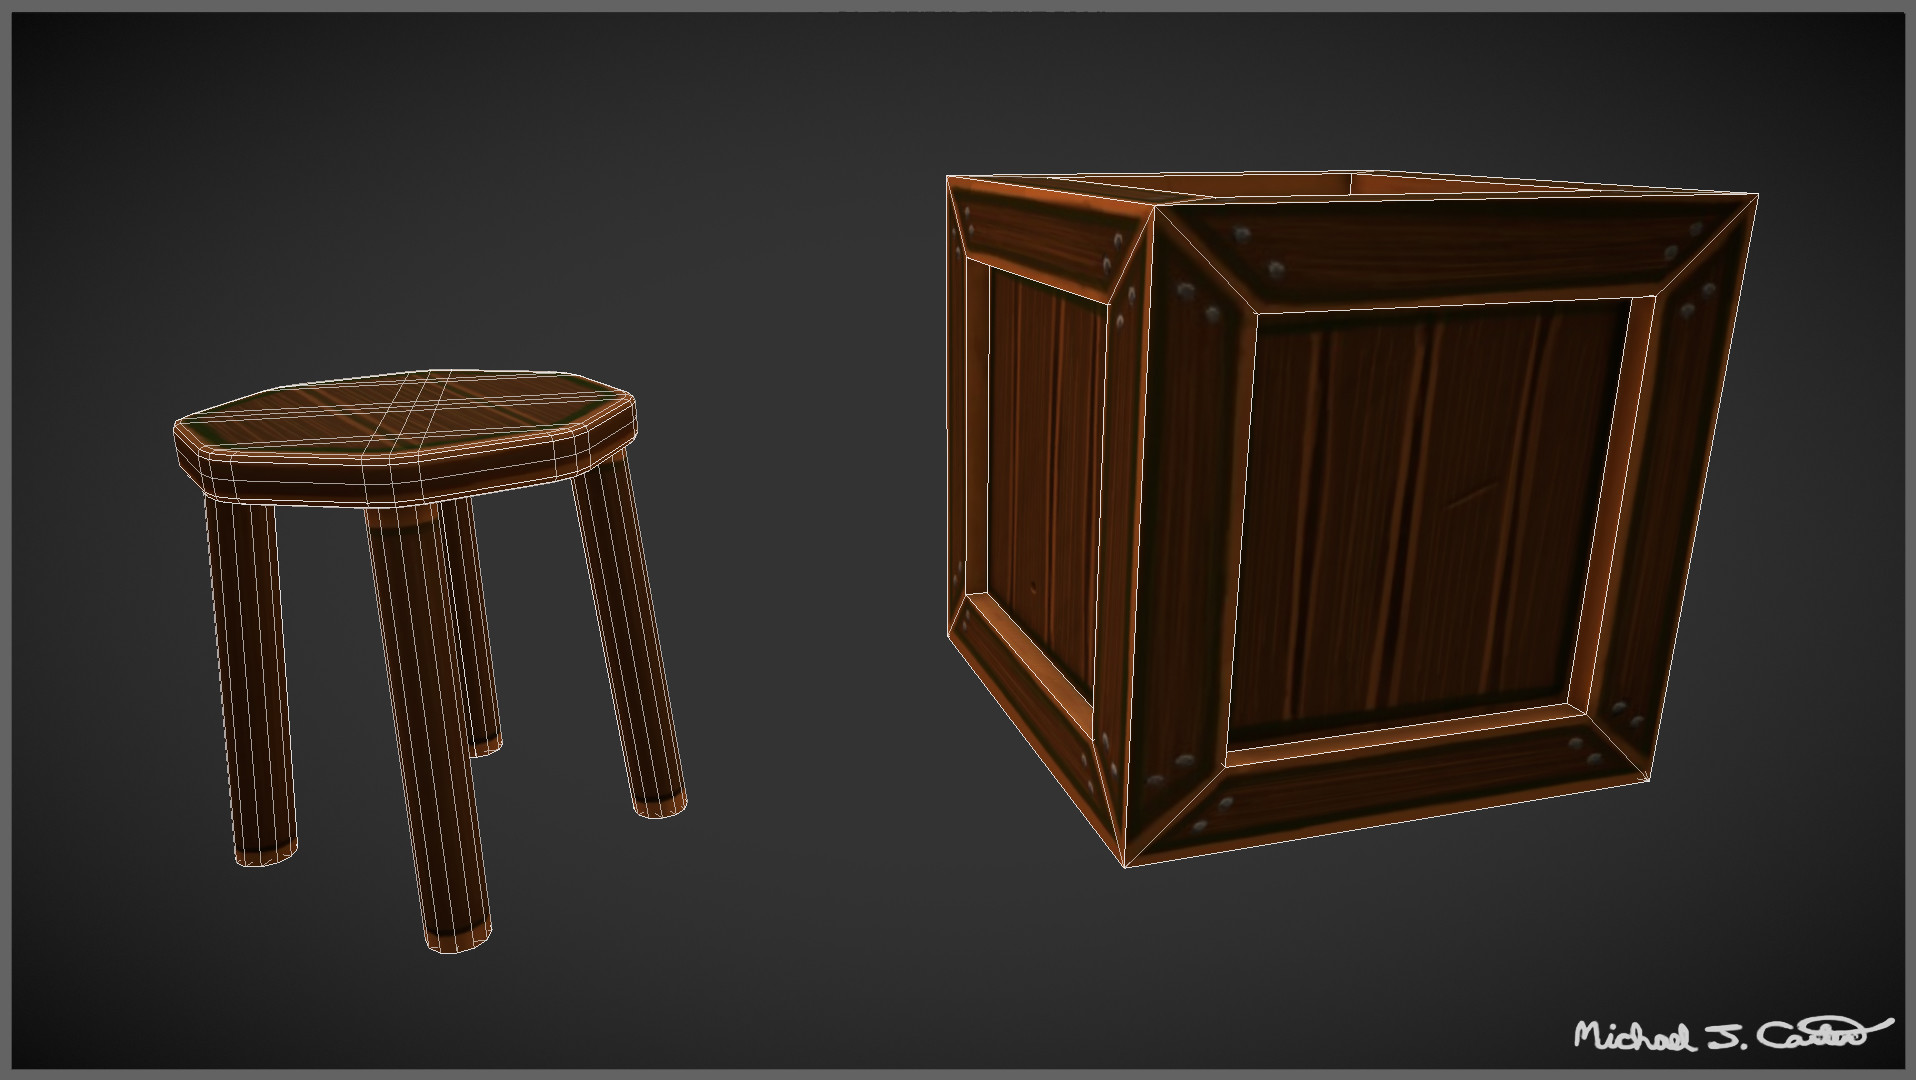 Michael jake carter mcarter wood assets wireframe view image